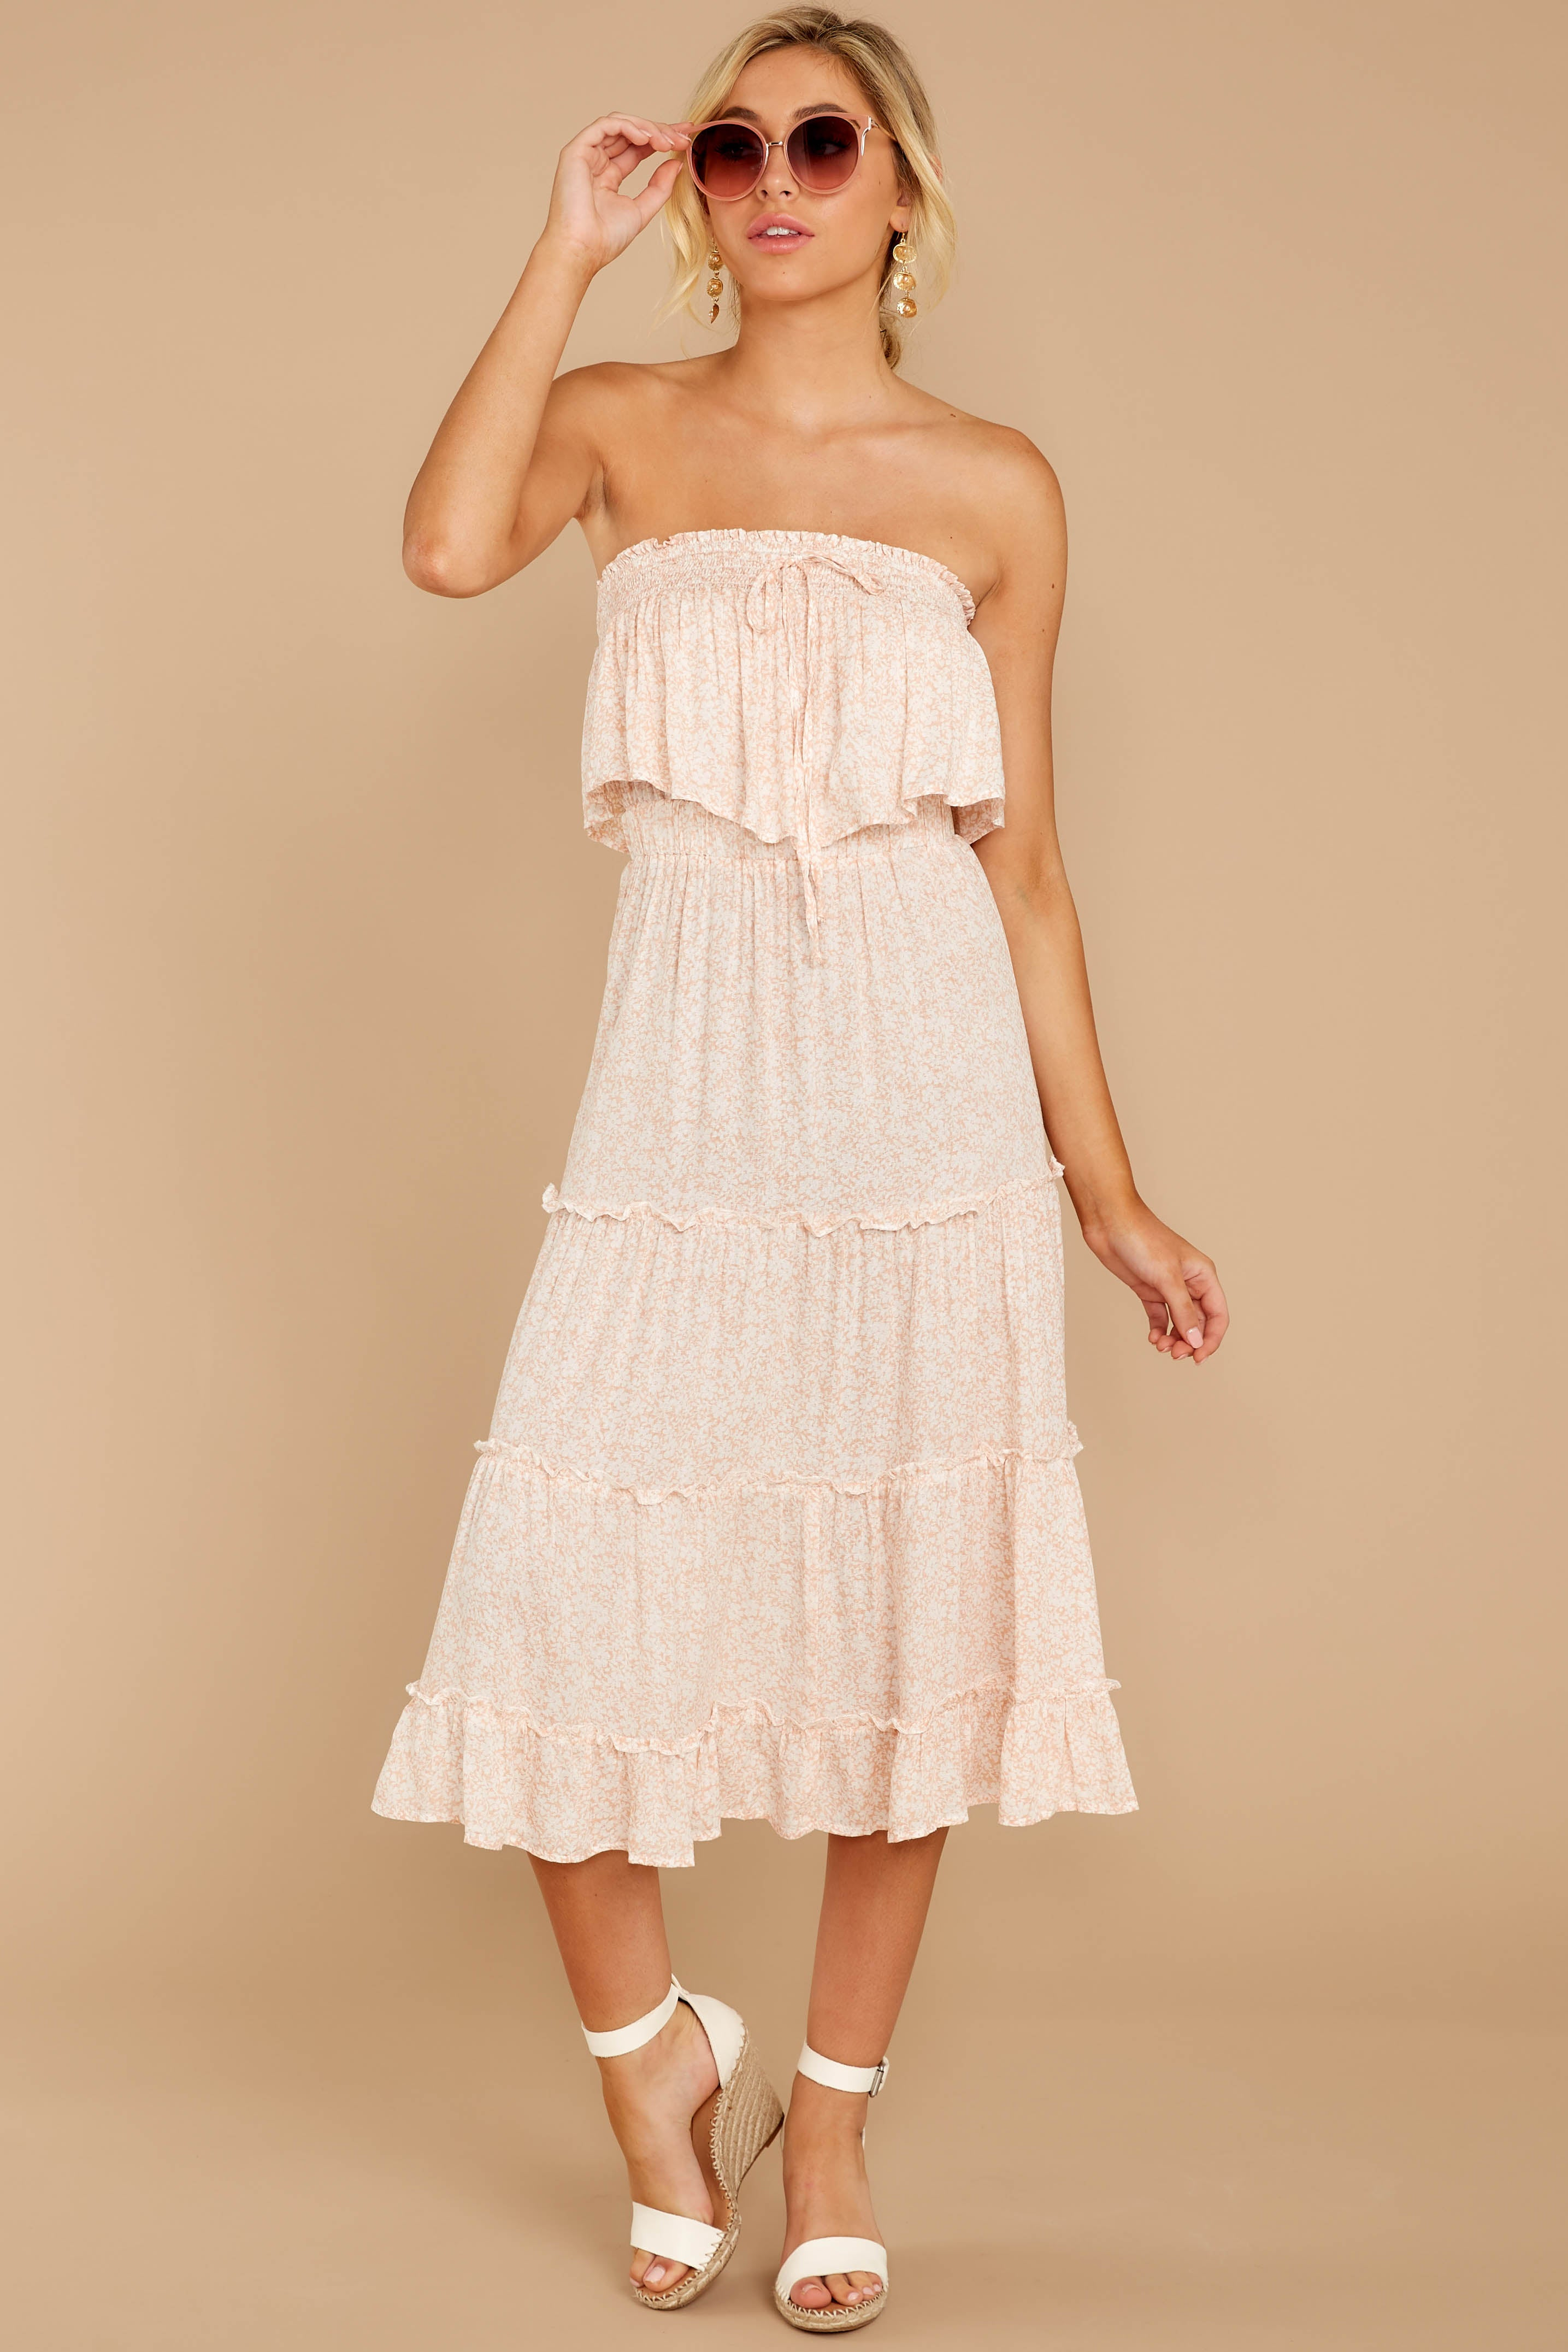 3 Wherever The Day Leads Blush Pink Floral Print Midi Dress at reddressboutique.com